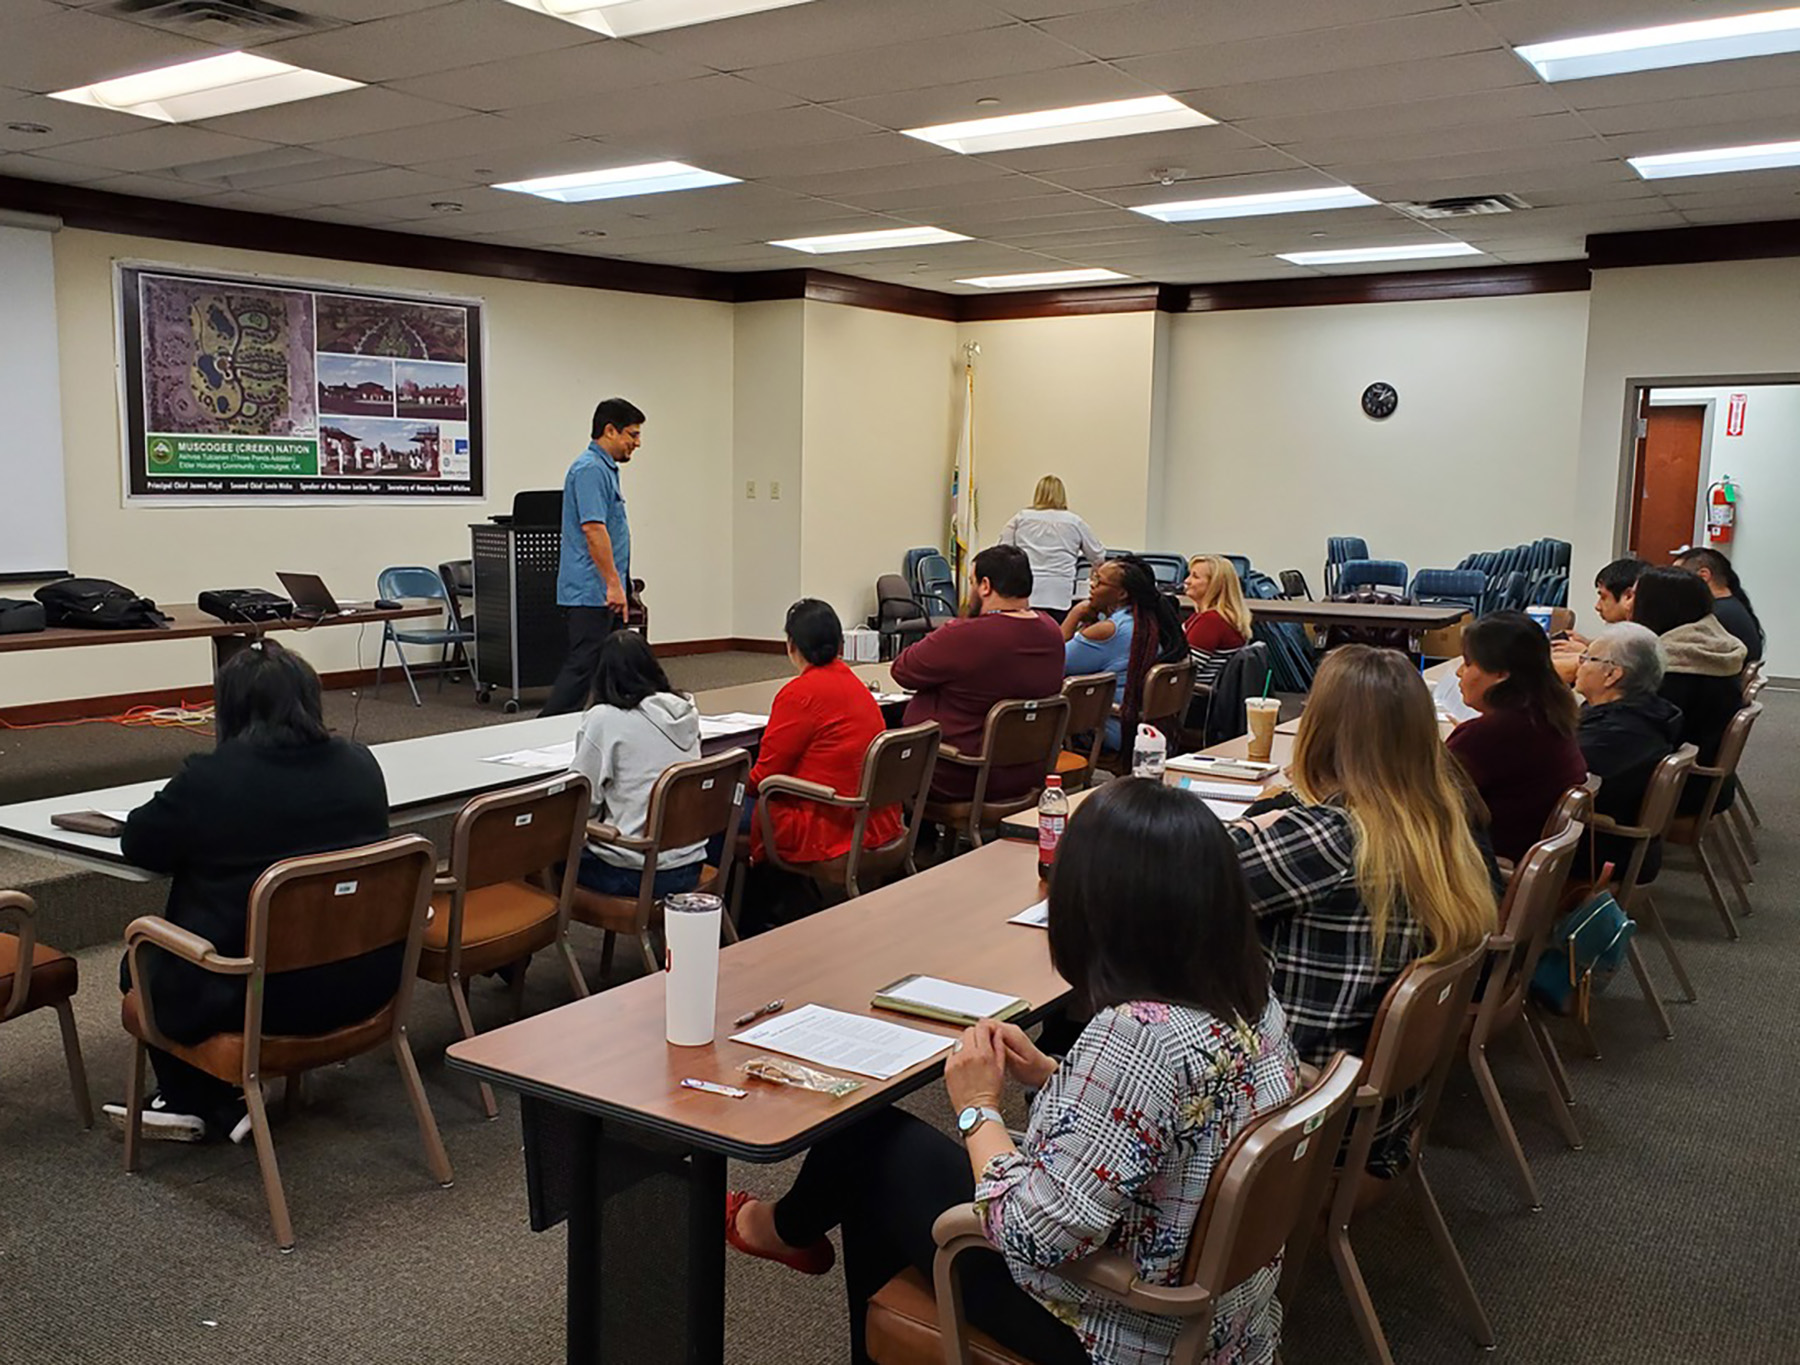 Muscogee (Creek) Nation collaborates with TFCU to offer financial workshop